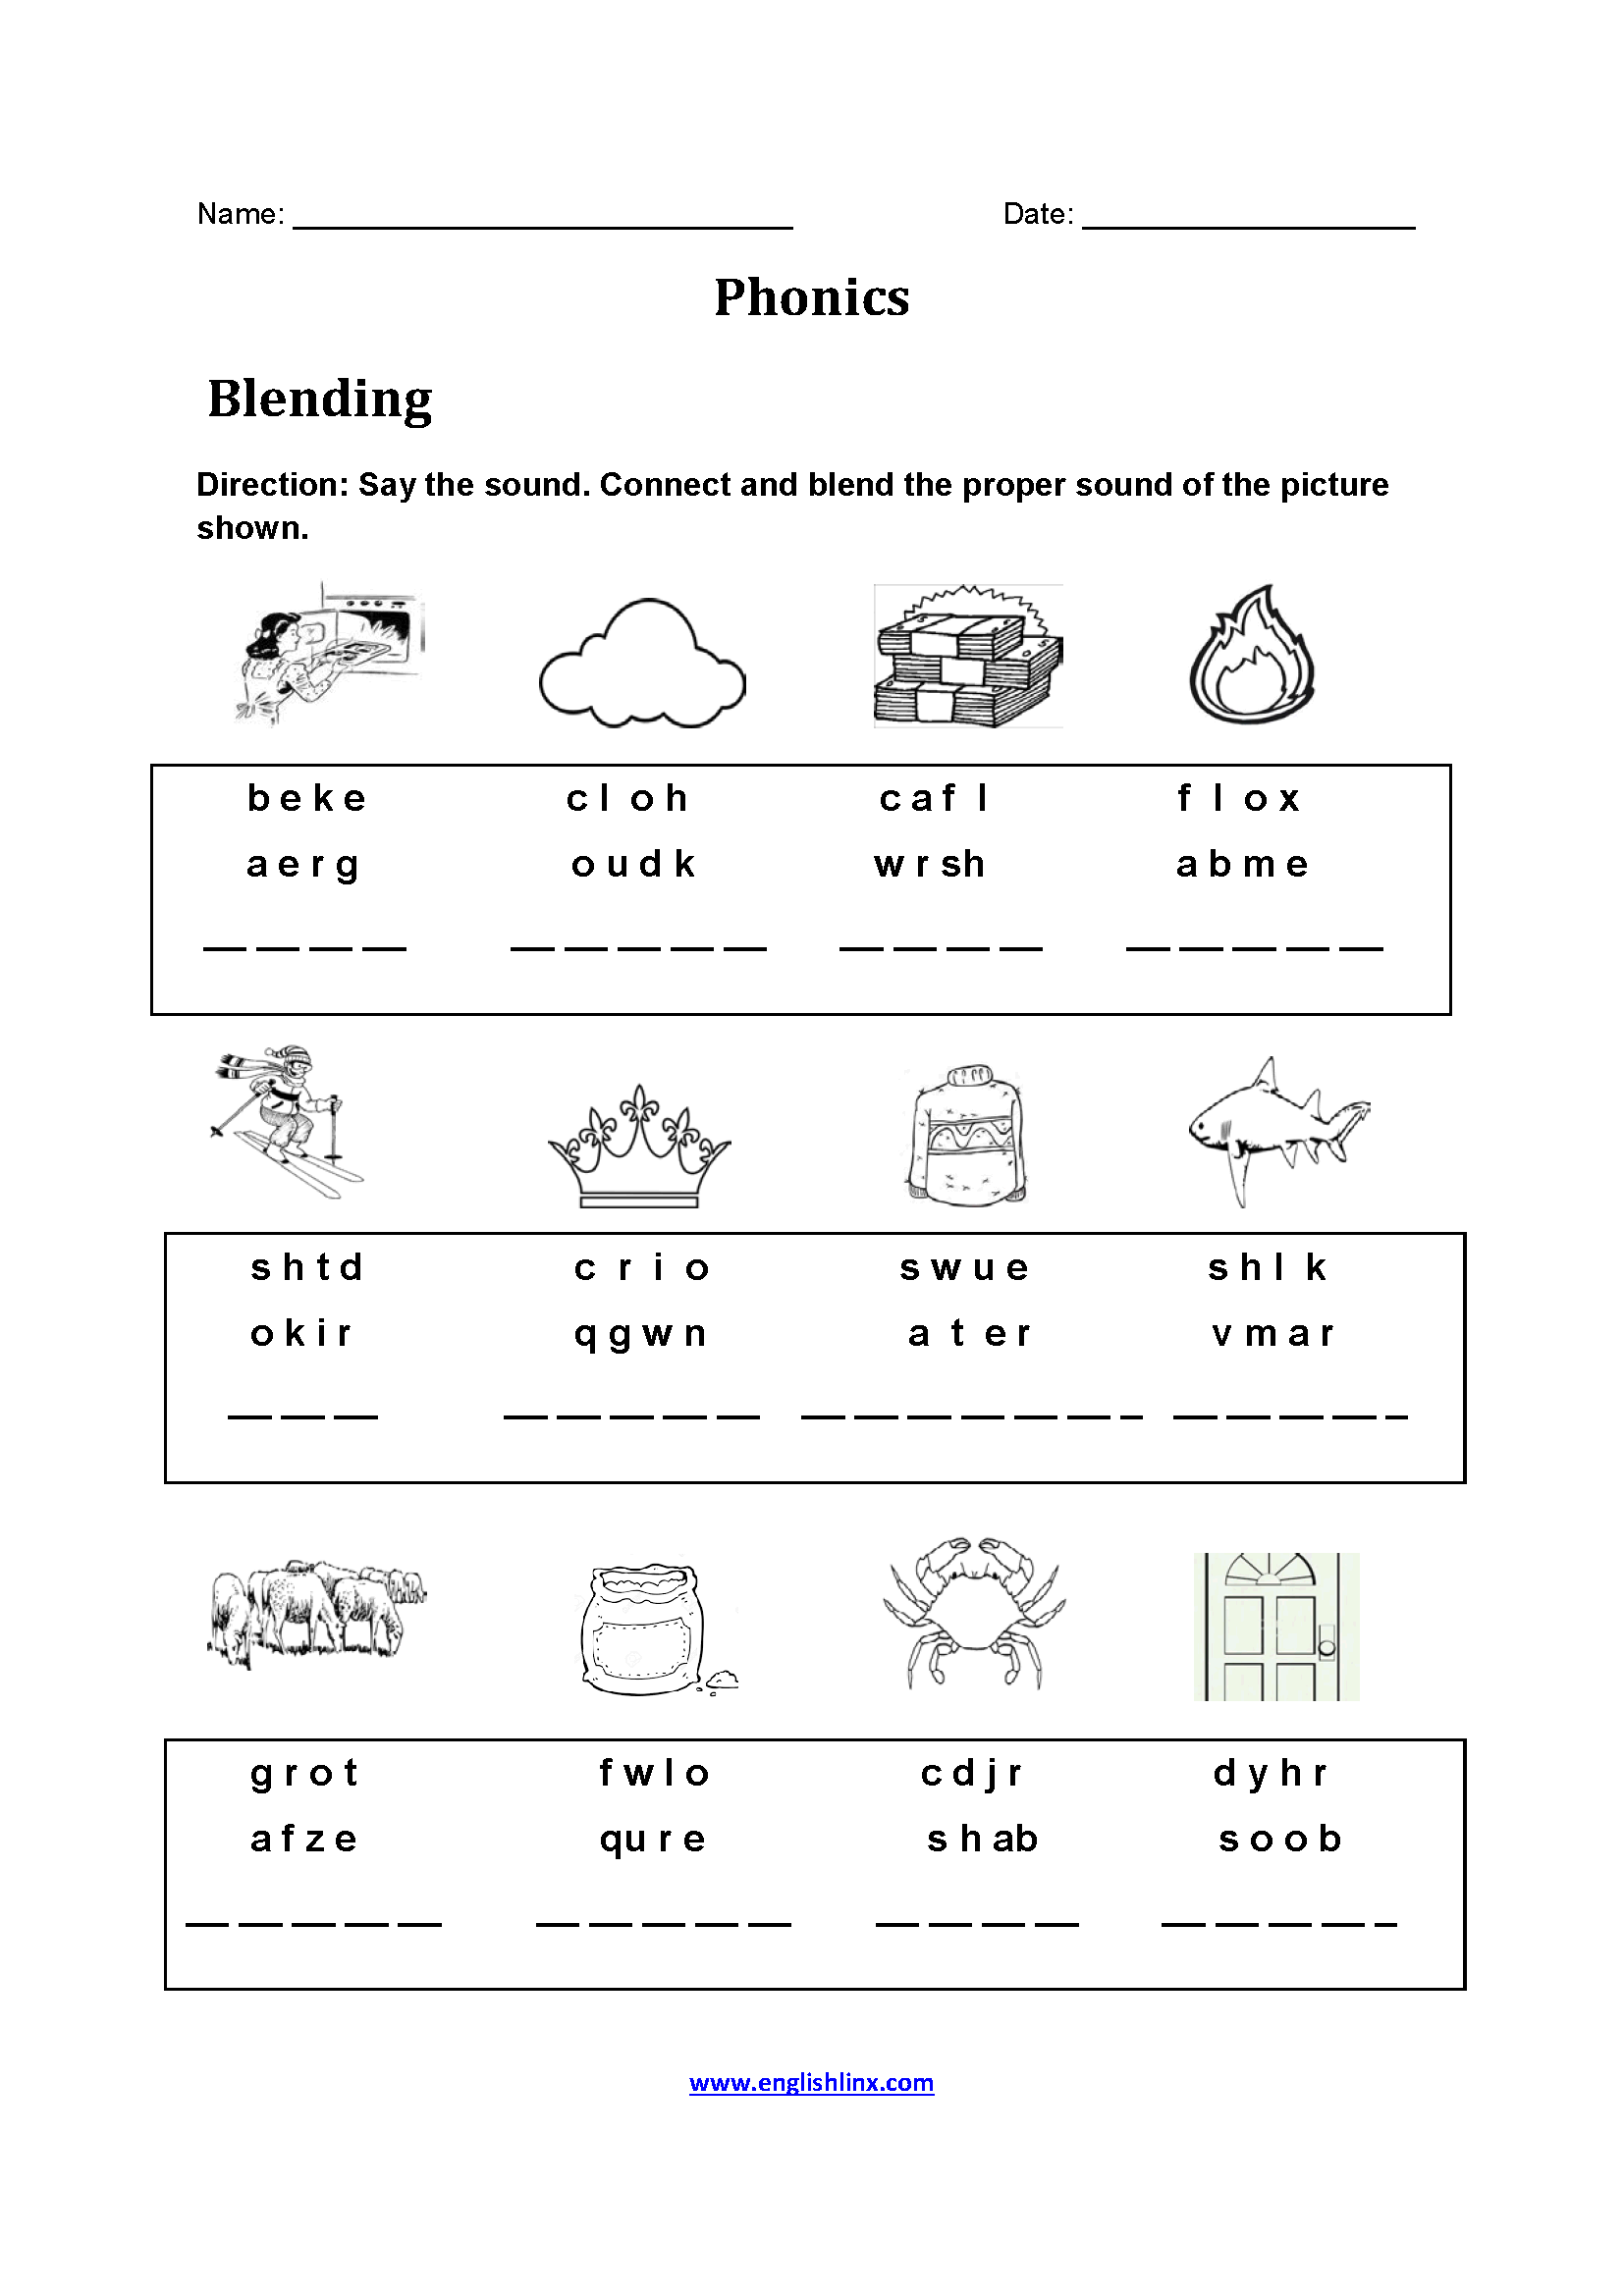 Blending Phonics Worksheets